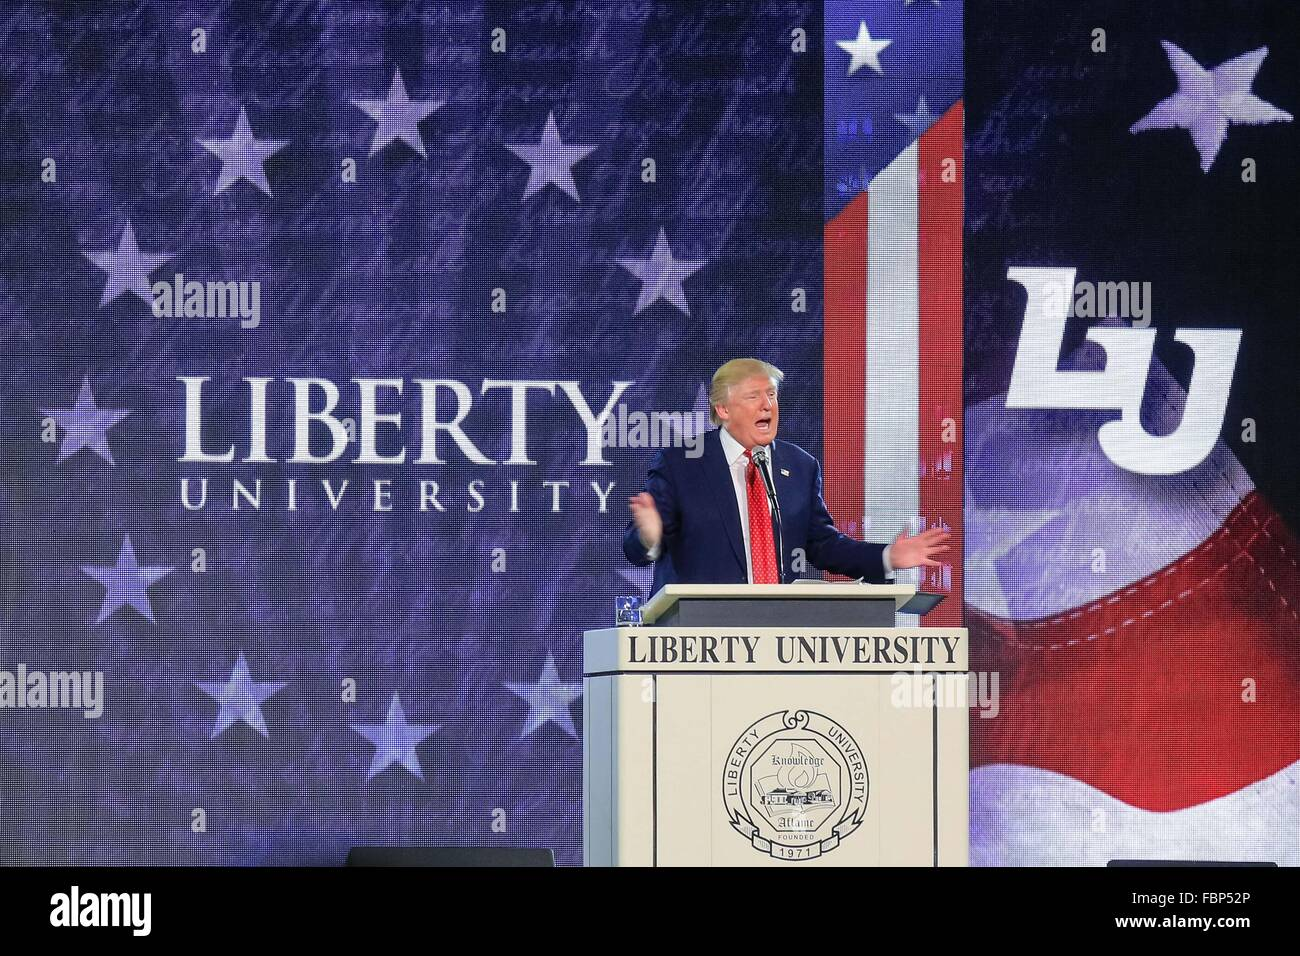 Donald Trump speaking at Liberty University - Stock Image